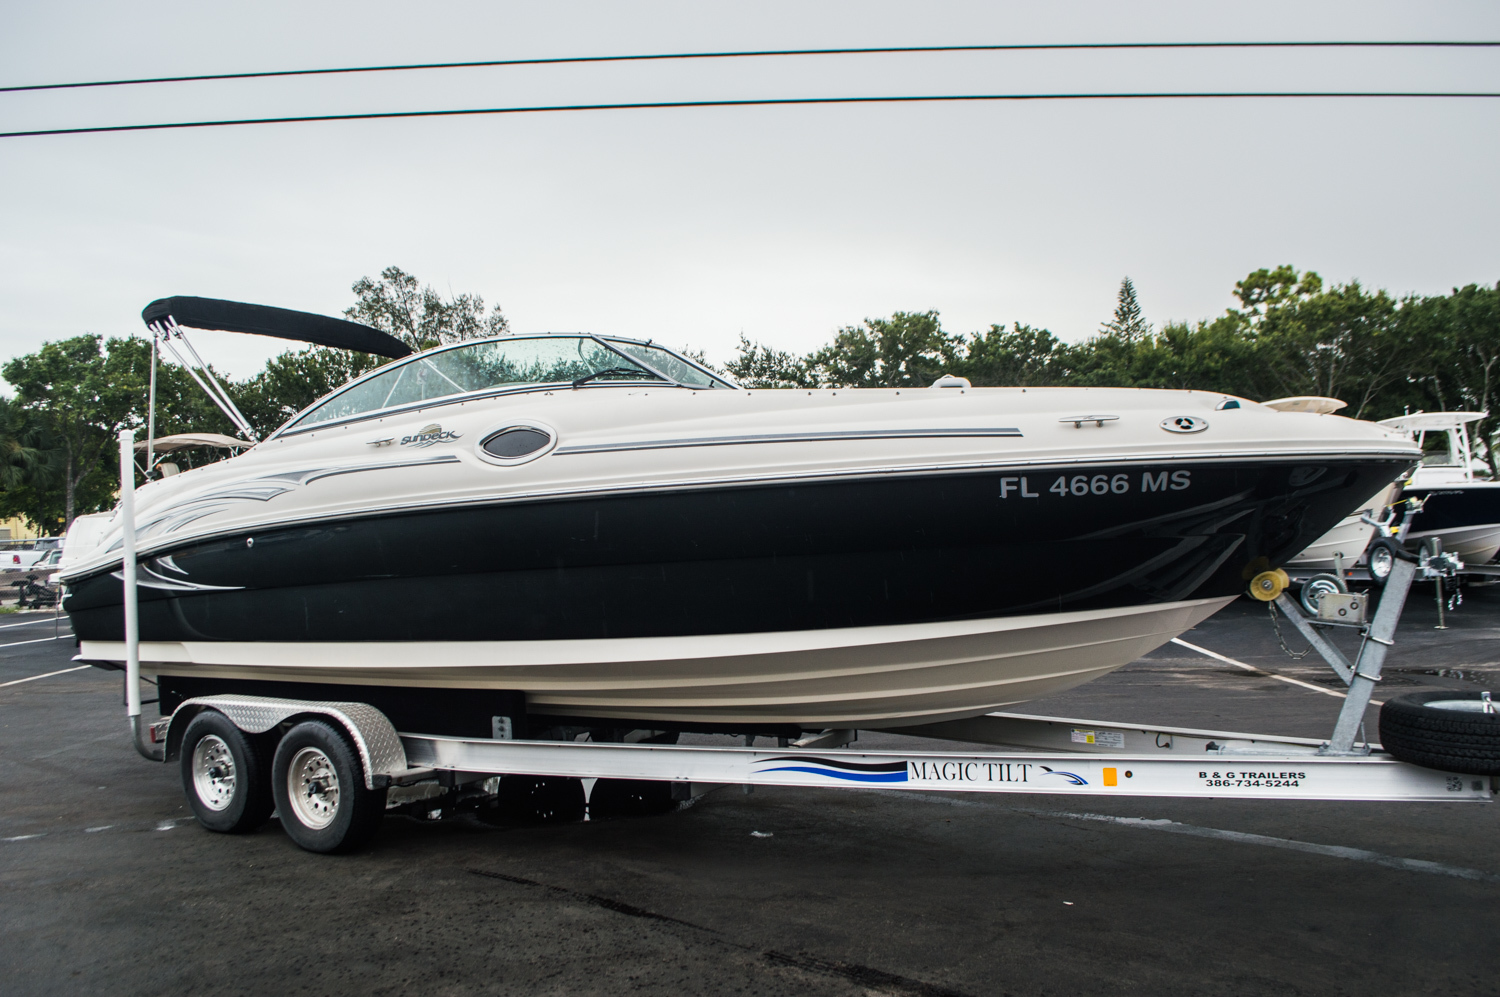 Thumbnail 1 for Used 2005 Sea Ray 240 Sundeck boat for sale in West Palm Beach, FL